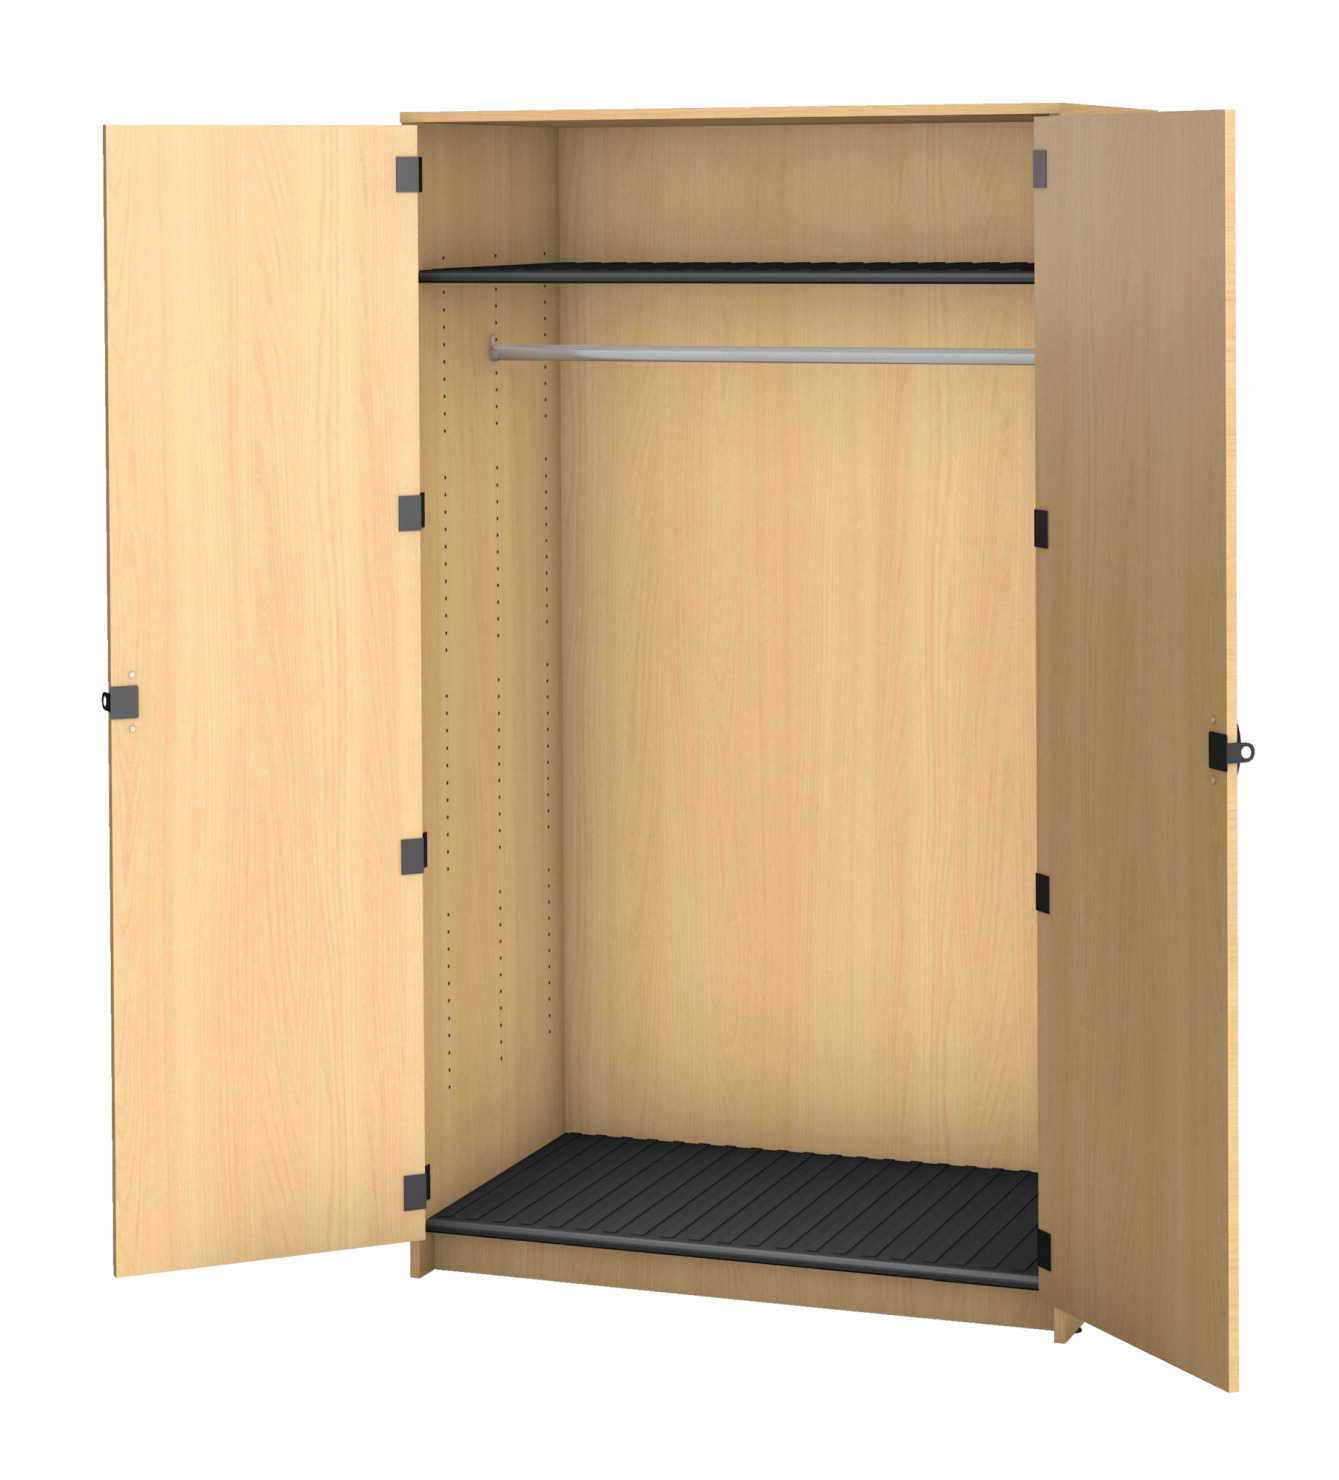 Fleetwood Harmony Garment Storage, 2 Doors, 48 x 30 x 84 Inches, Fusion Maple